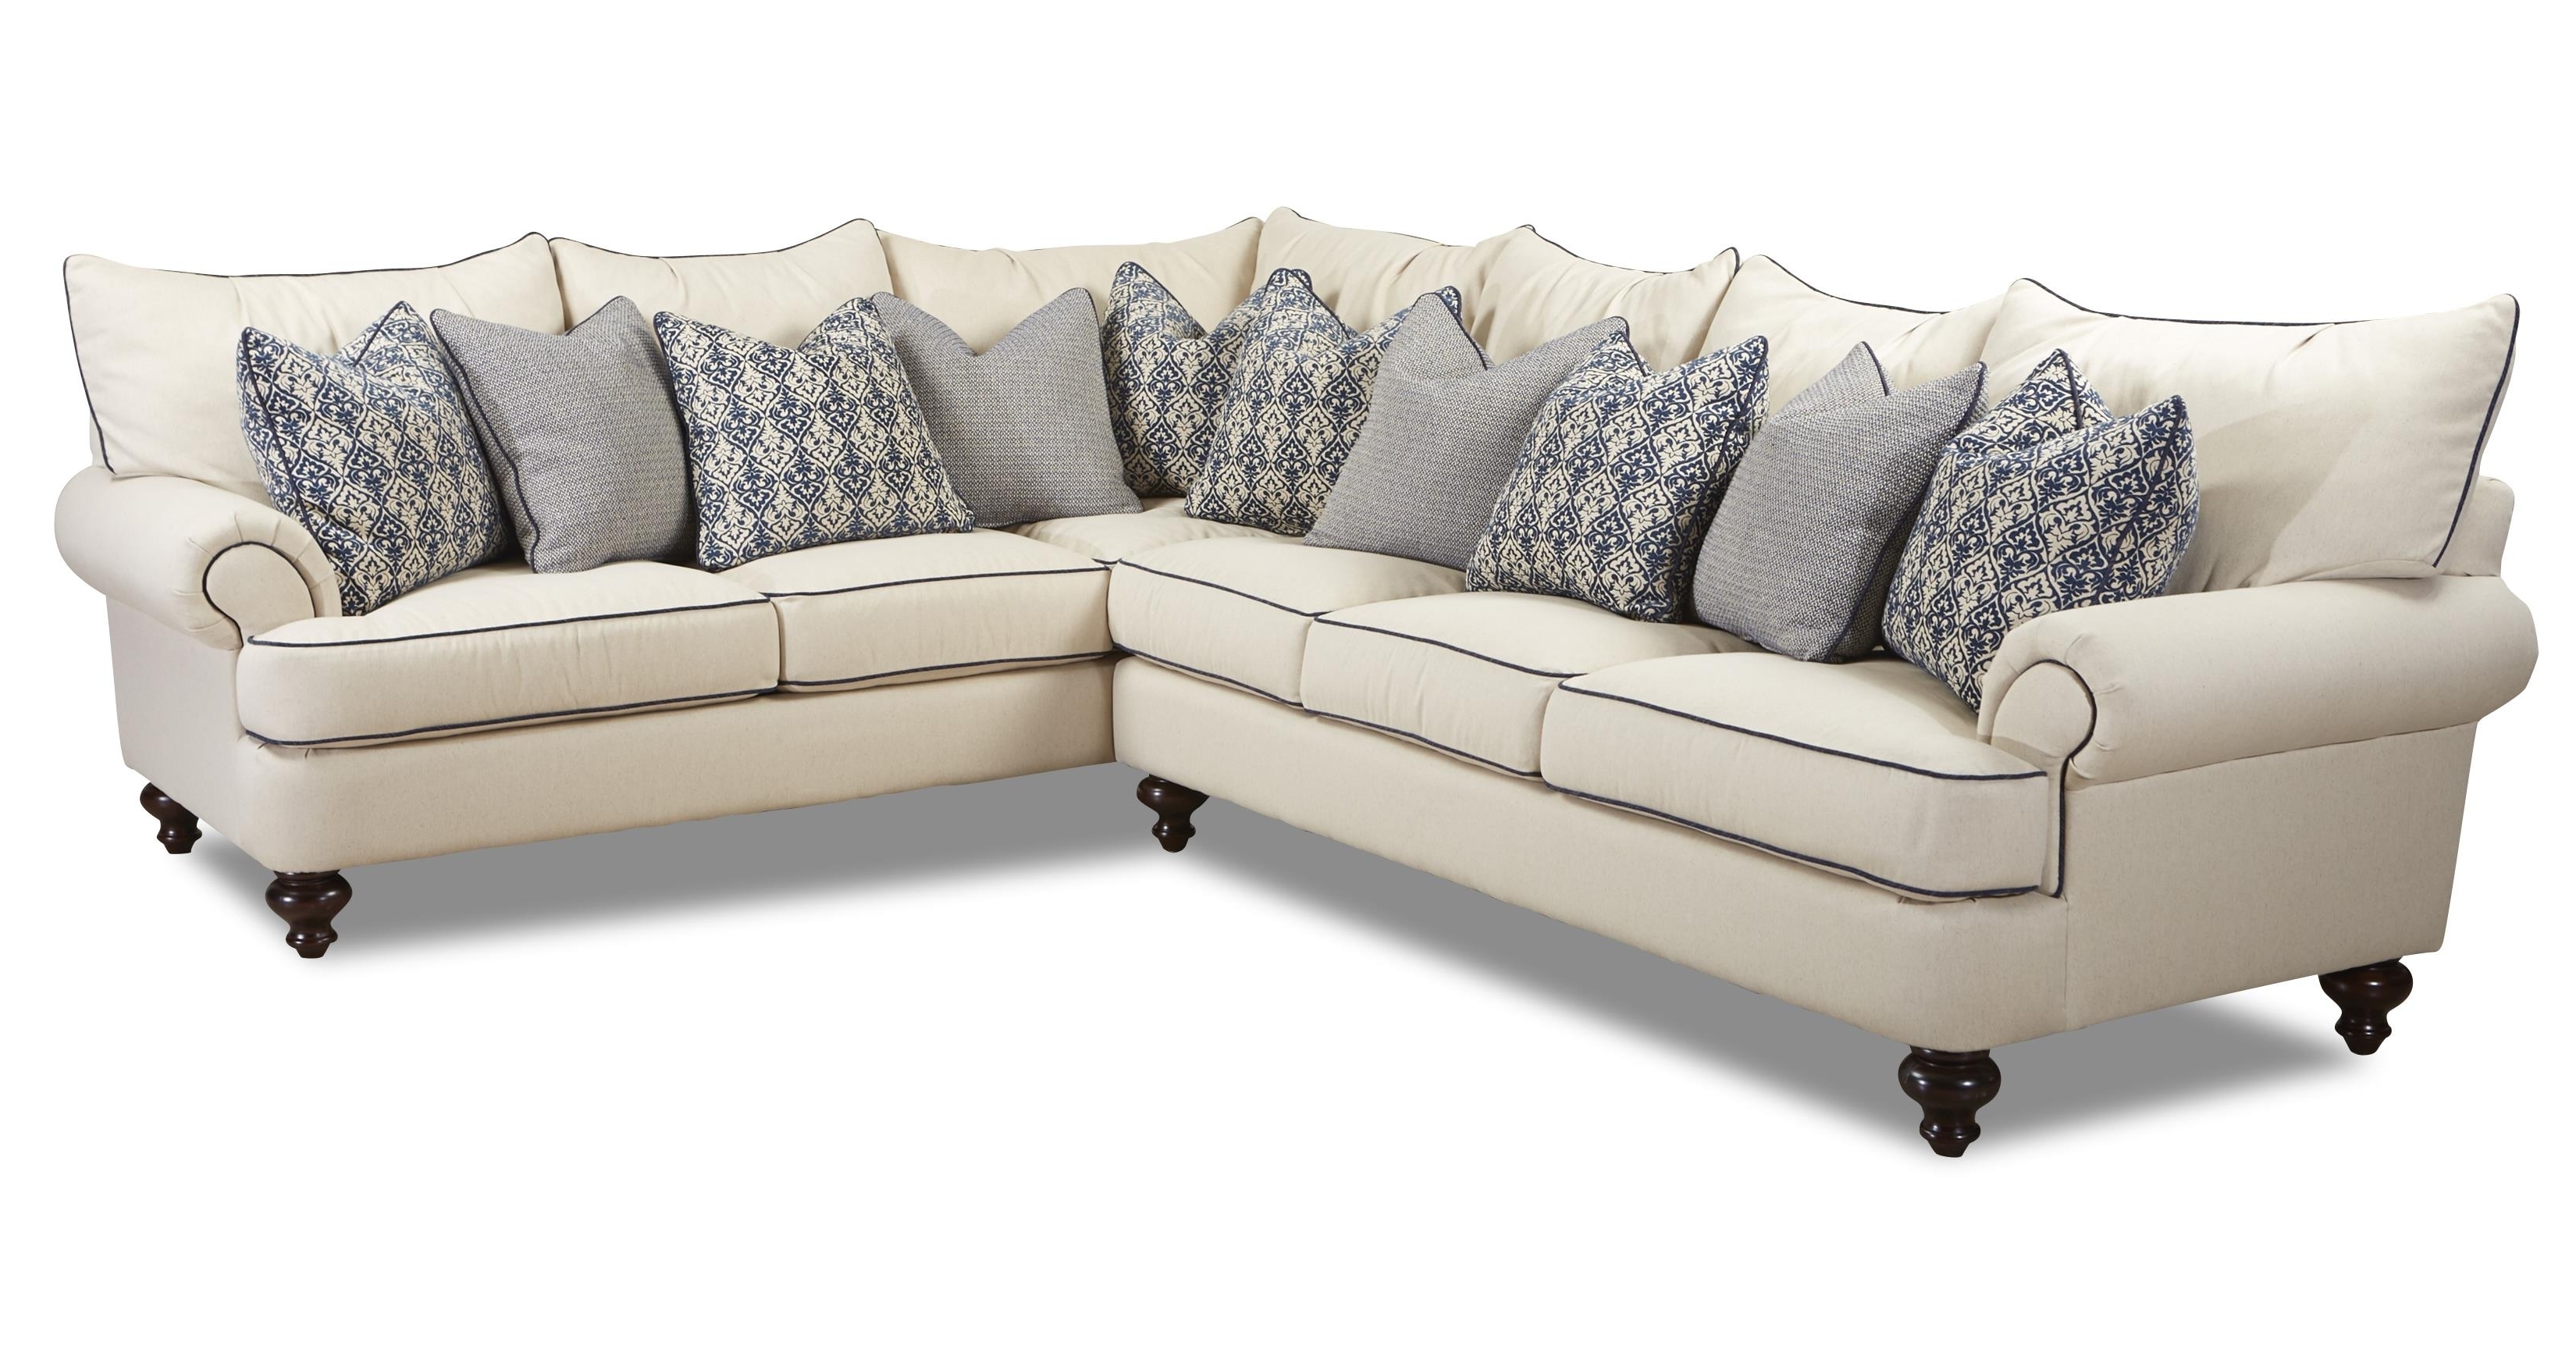 Famous Shabby Chic Sectional Sofaklaussner (View 2 of 15)